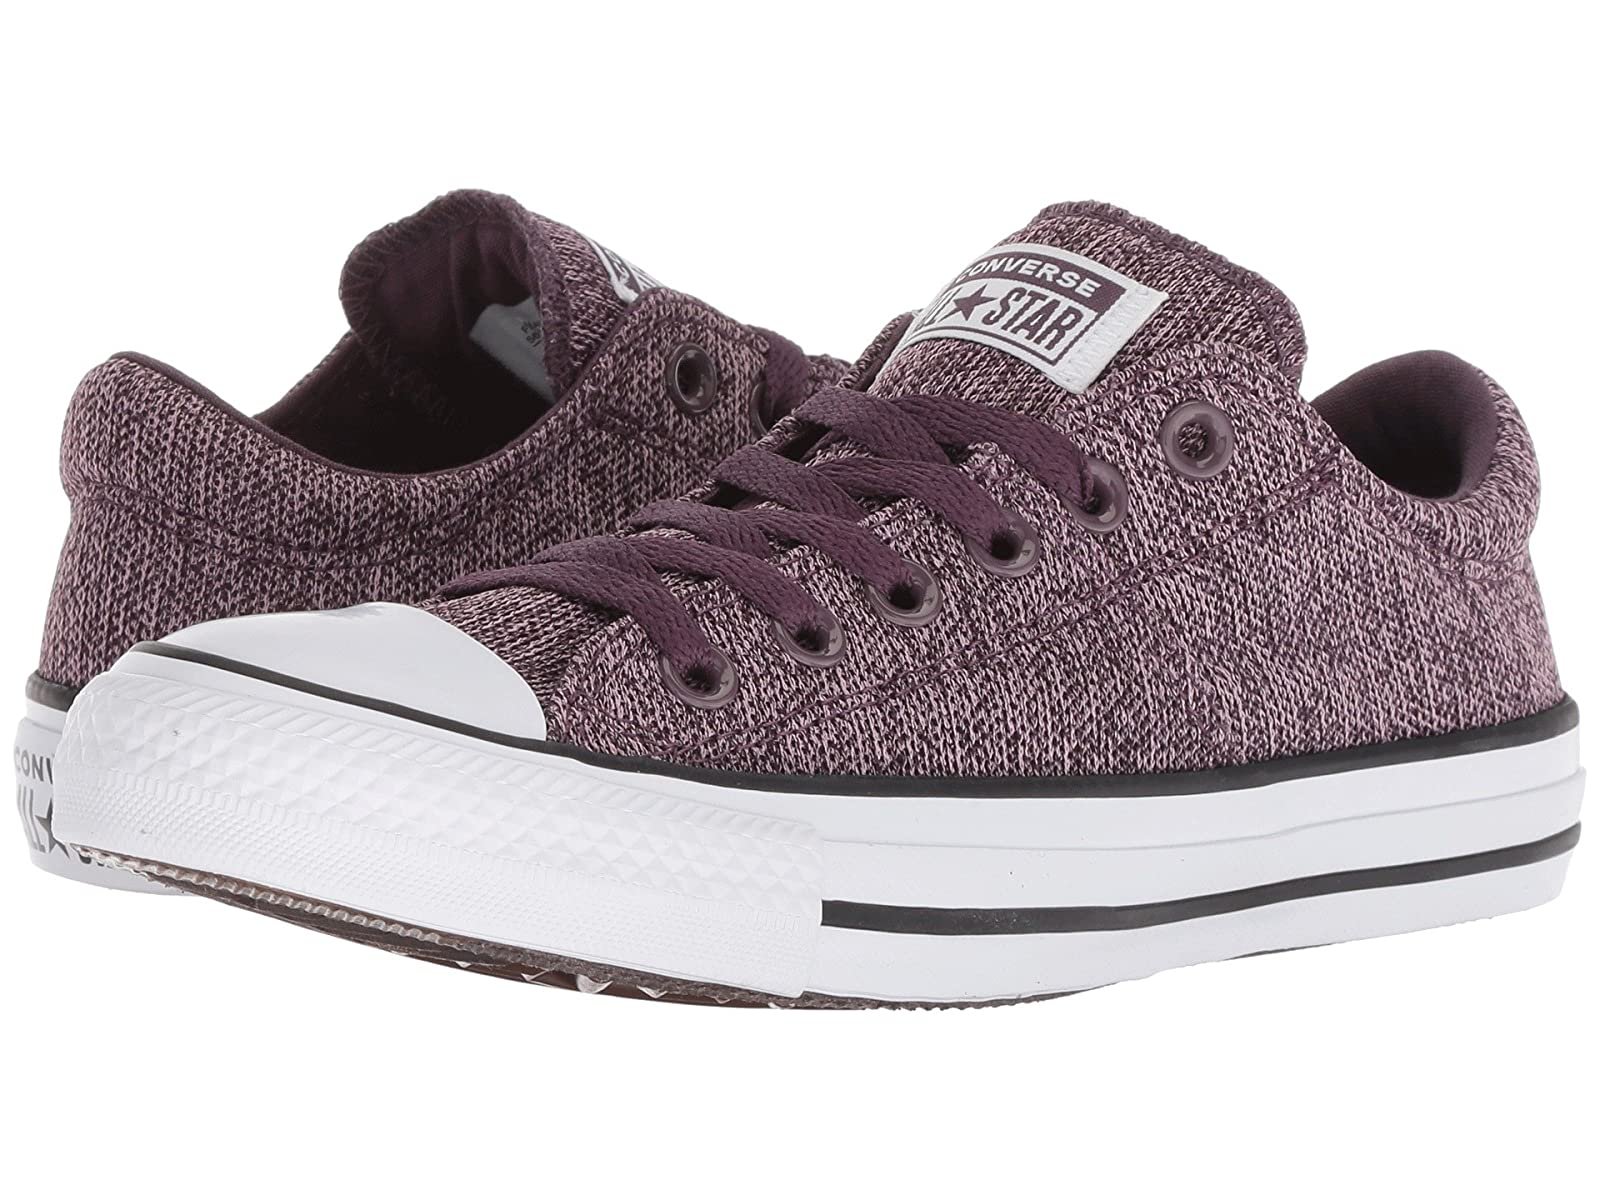 Converse Chuck Taylor All Star Madison - Salt and Pepper OxAtmospheric grades have affordable shoes